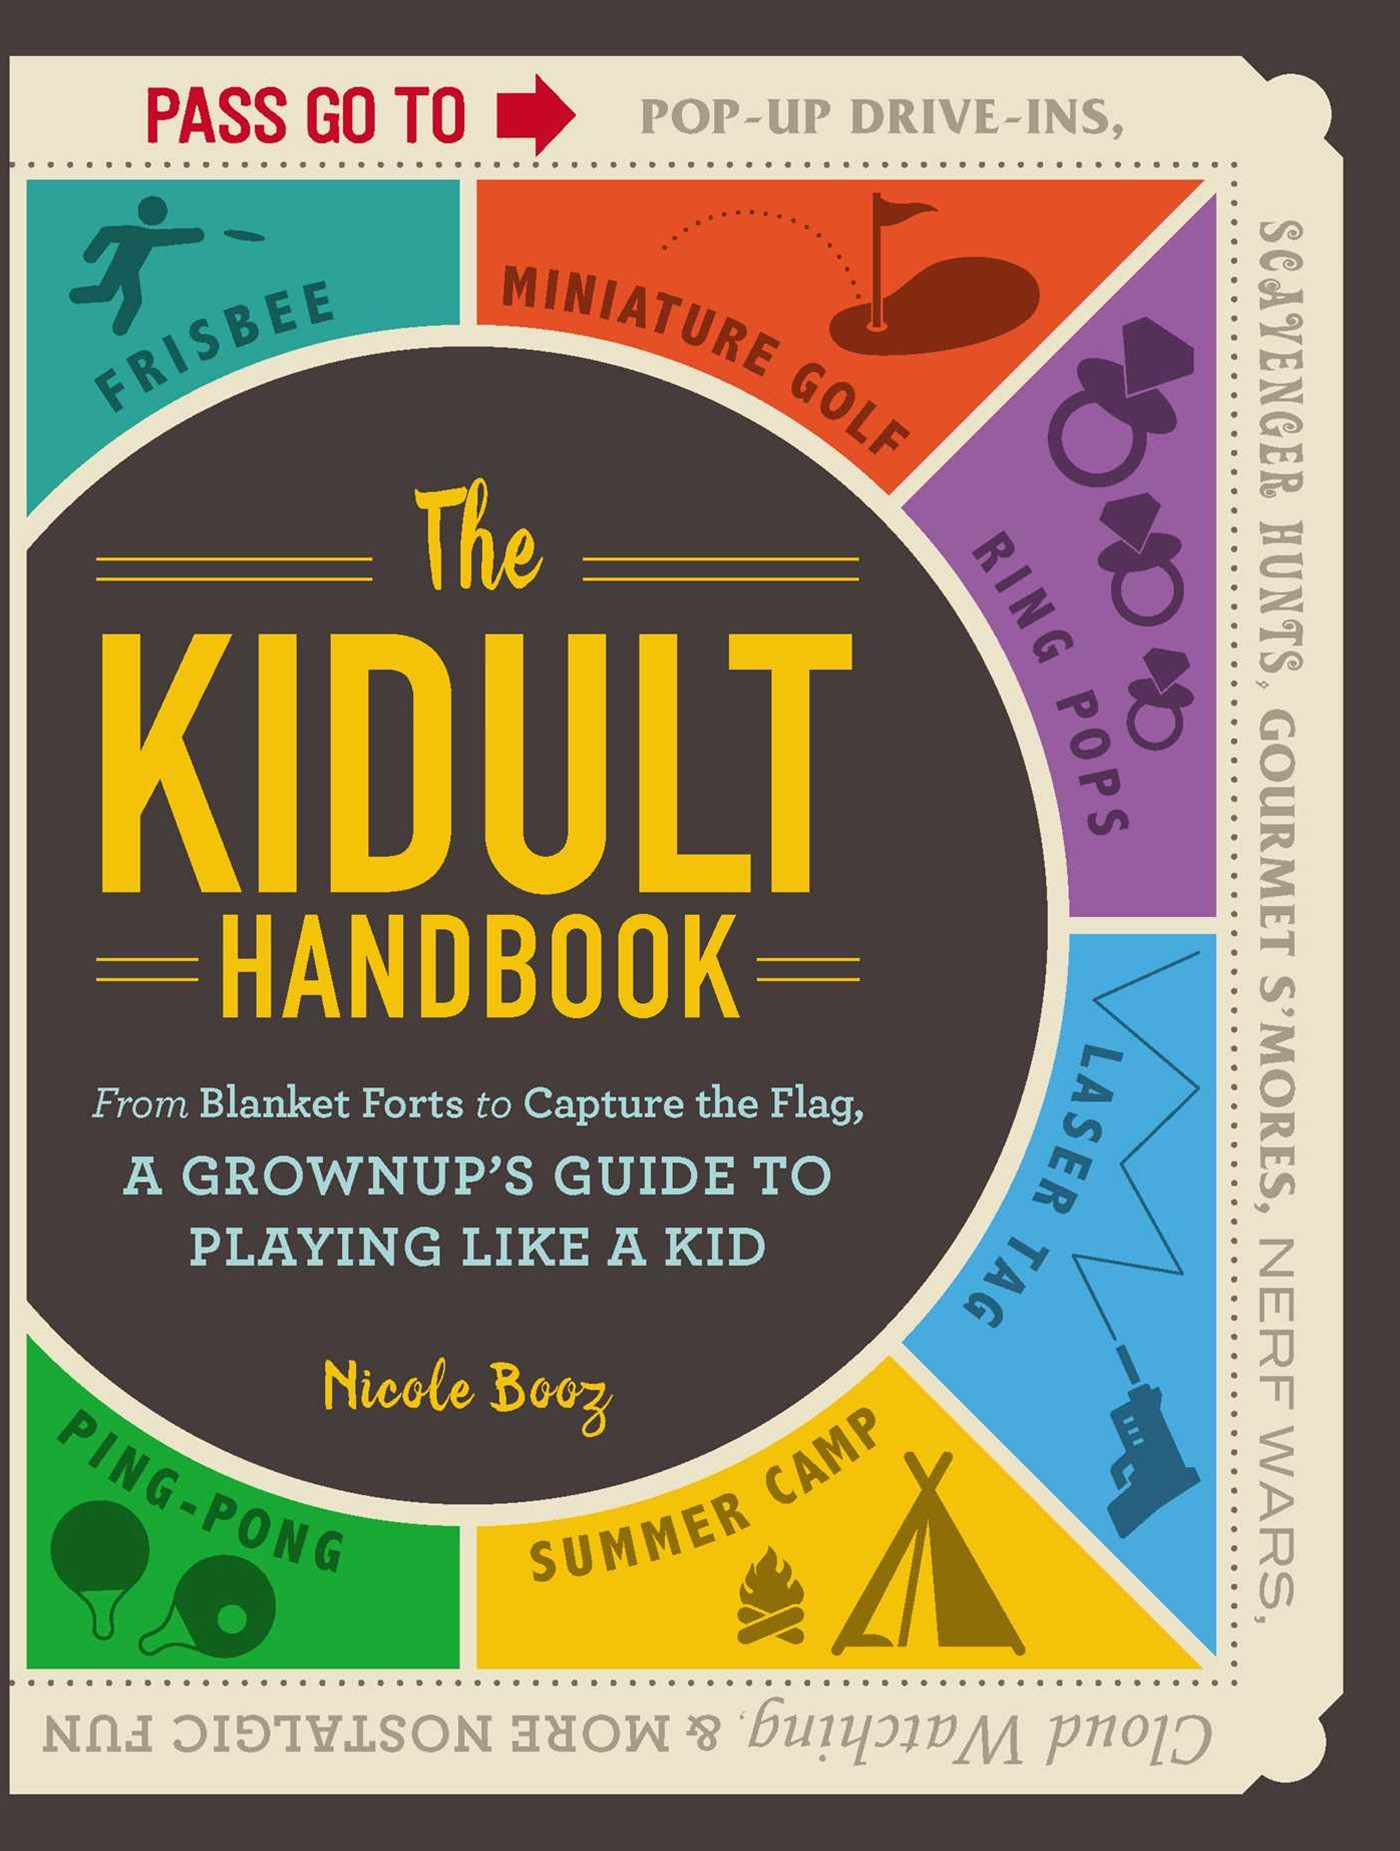 Kidult Handbook: From Blanket Forts to Capture the Flag, a Grownup's Guide to Playing Like a Kid